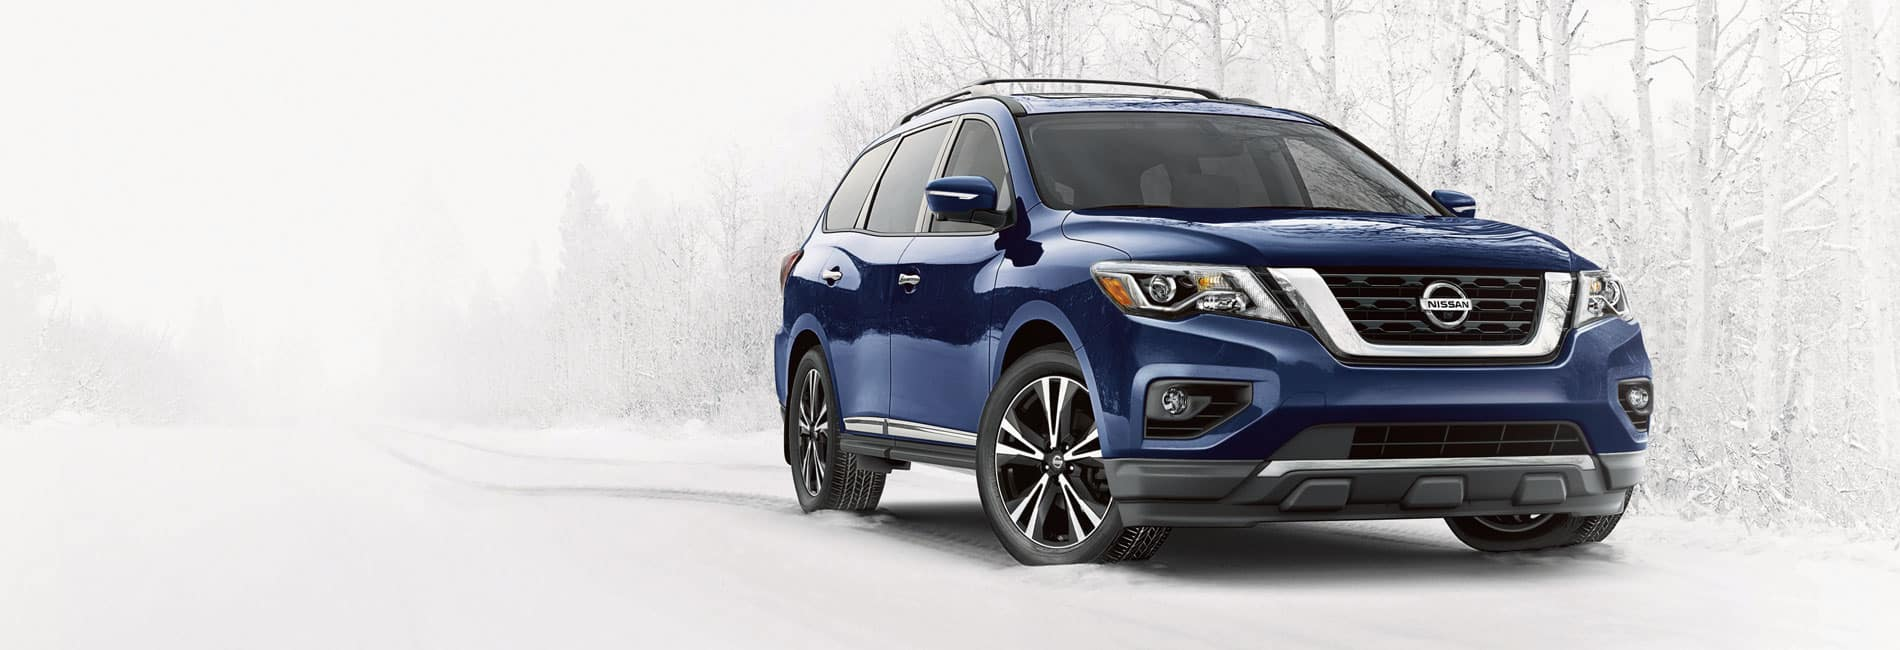 2018 Nissan Pathfinder Trims at Star Nissan